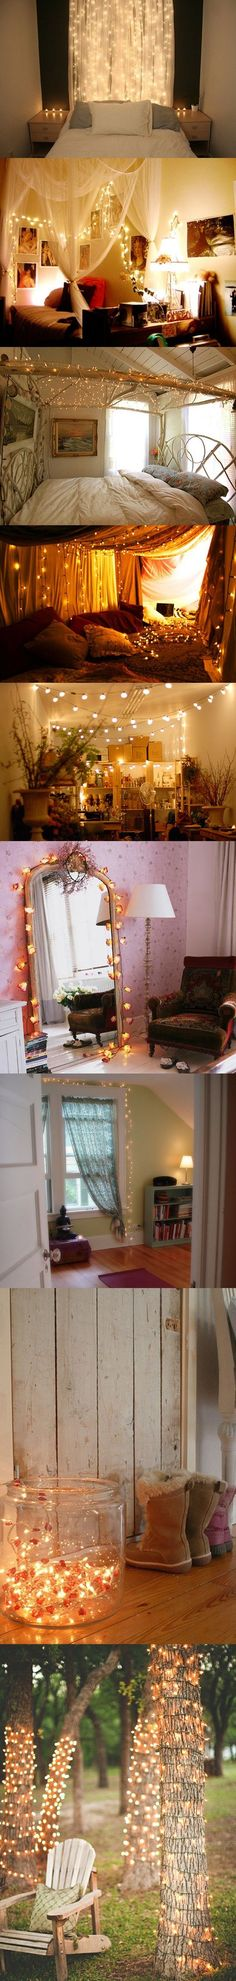 Fairy Lights Decorating Ideas via DIY Home Design - lots of ideas for using string lights to create atmosphere